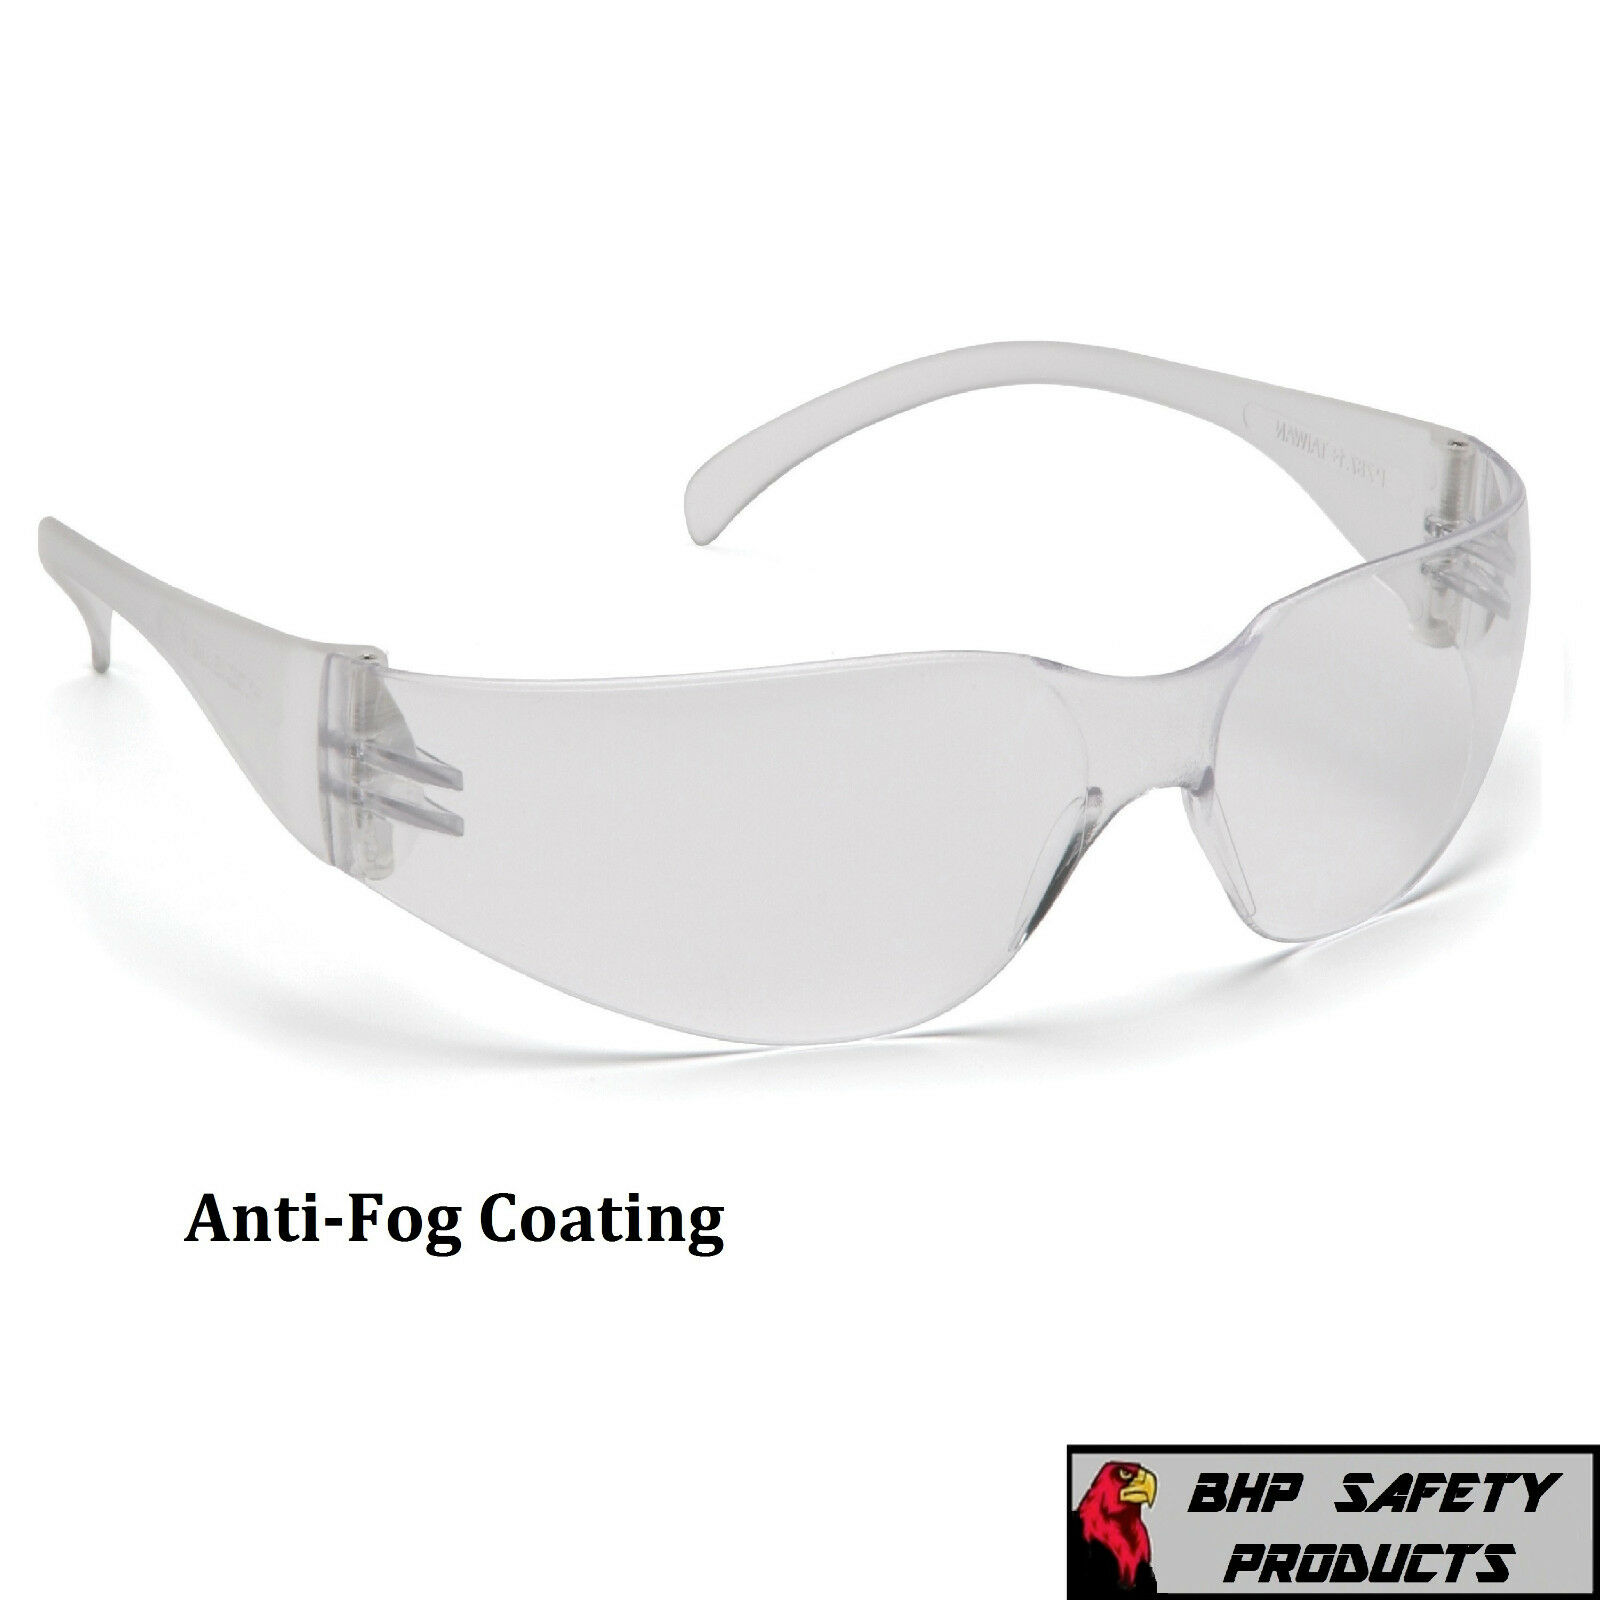 PYRAMEX INTRUDER SAFETY GLASSES ANSI Z87+ WORK EYEWEAR - LIGHTWEIGHT, SUNGLASSES Clear Anti-Fog S4110ST